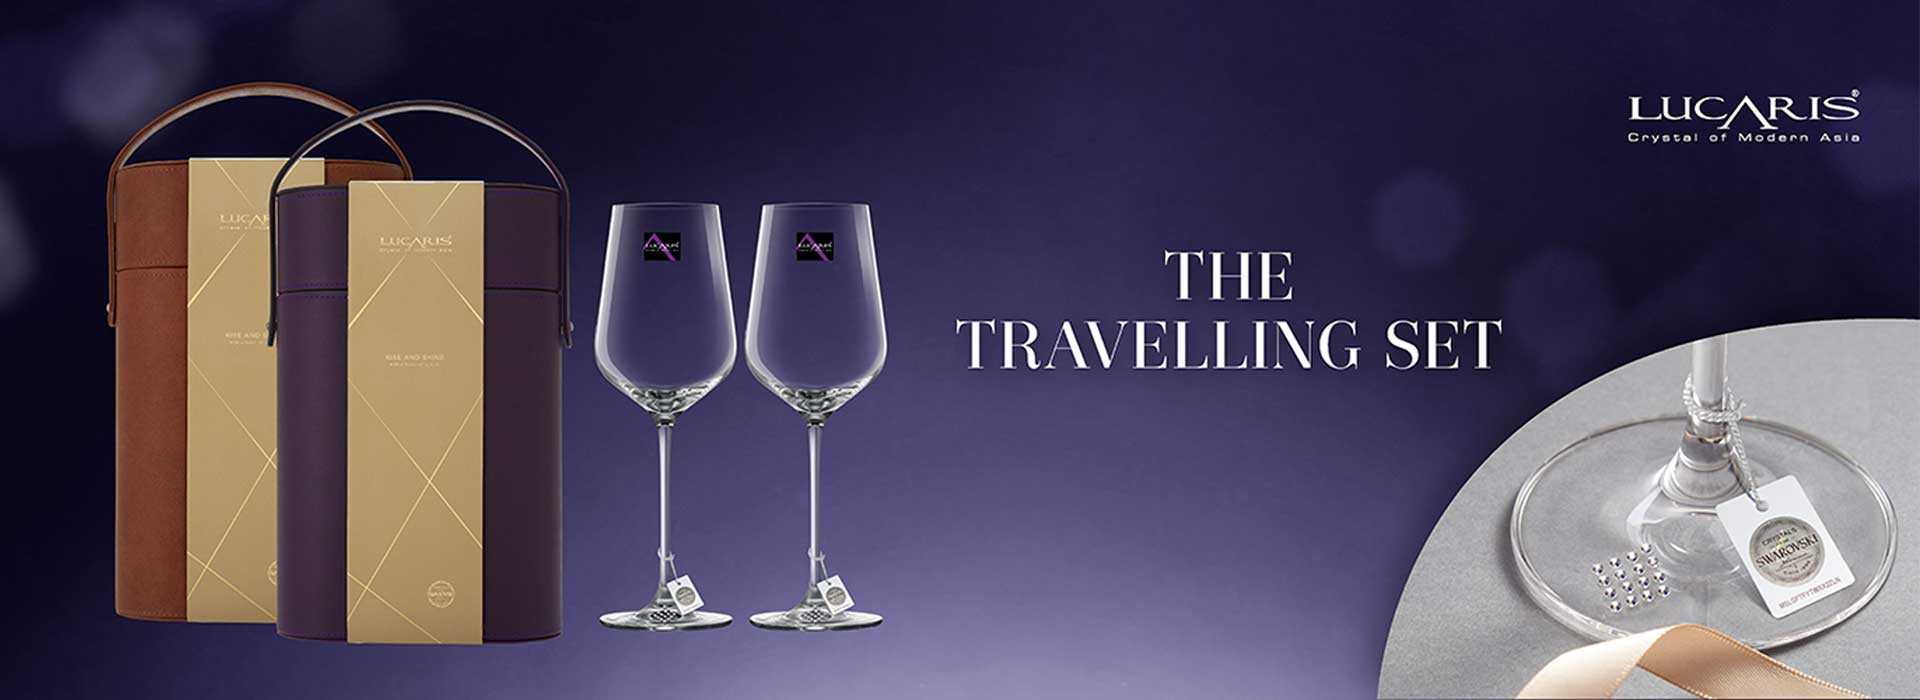 THE TRAVELLING SET